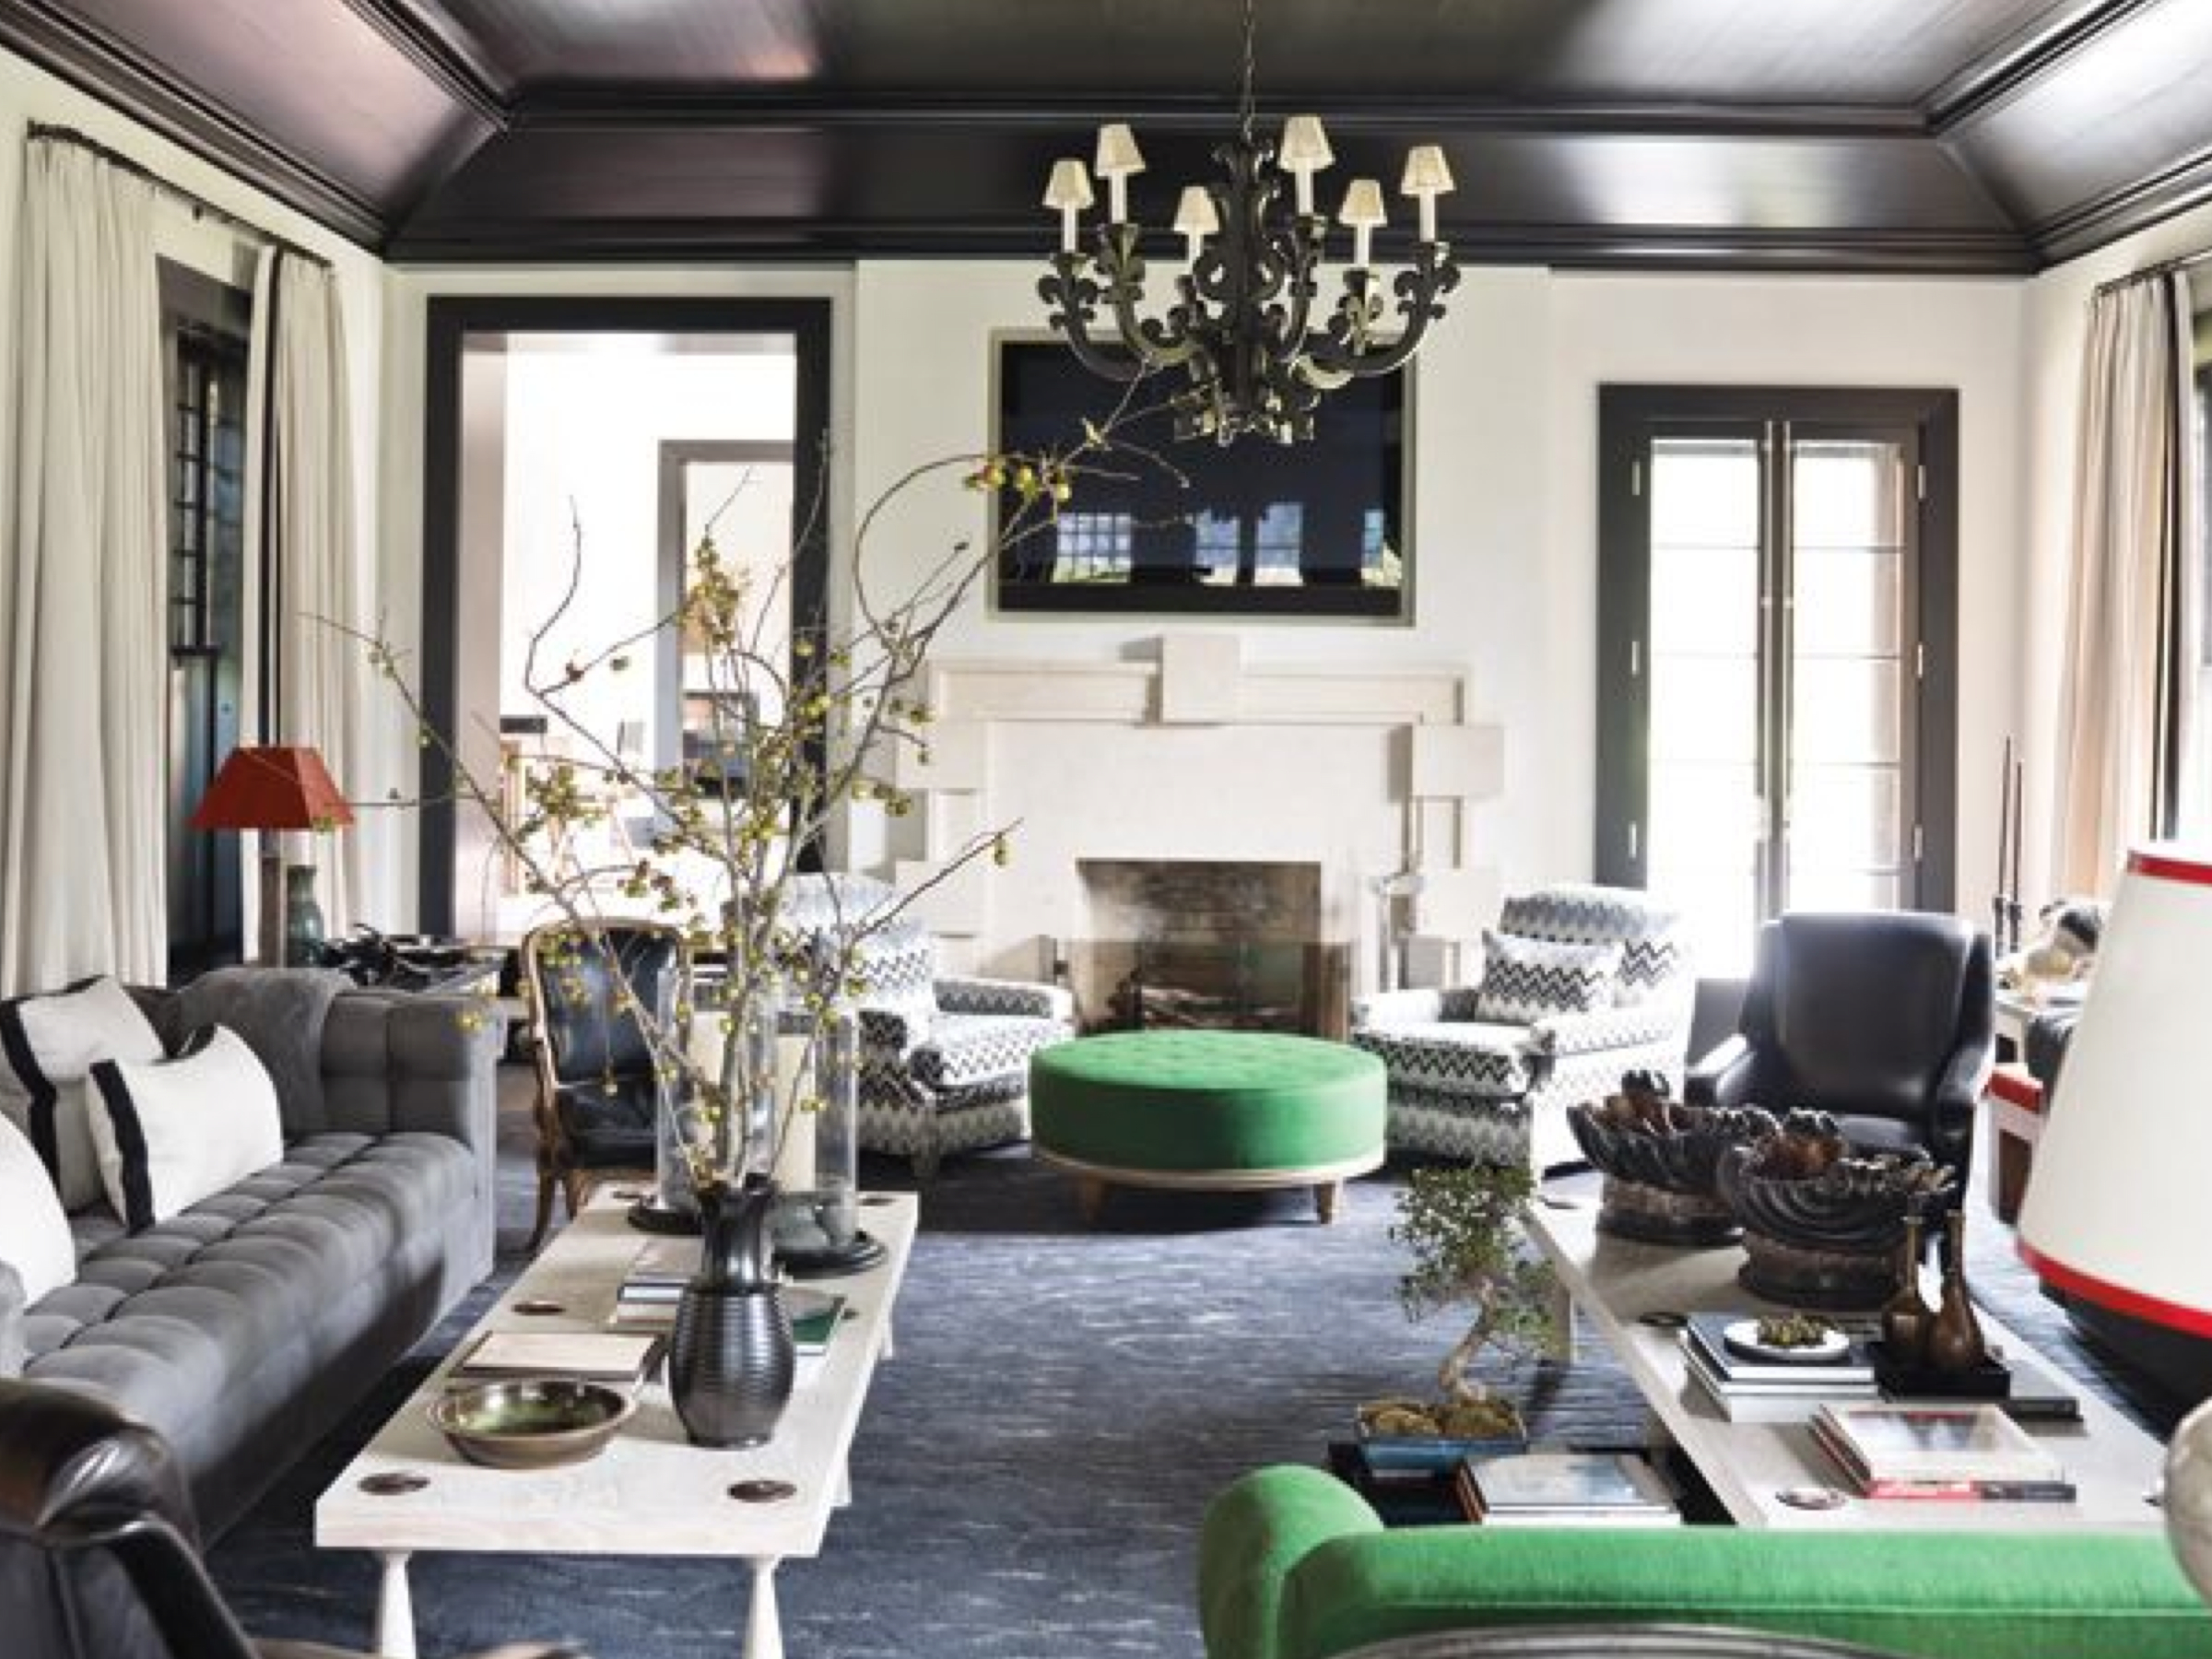 Create a Masculine Urban Chic Look with Black Ceiling Tiles  FauxTinTilescom